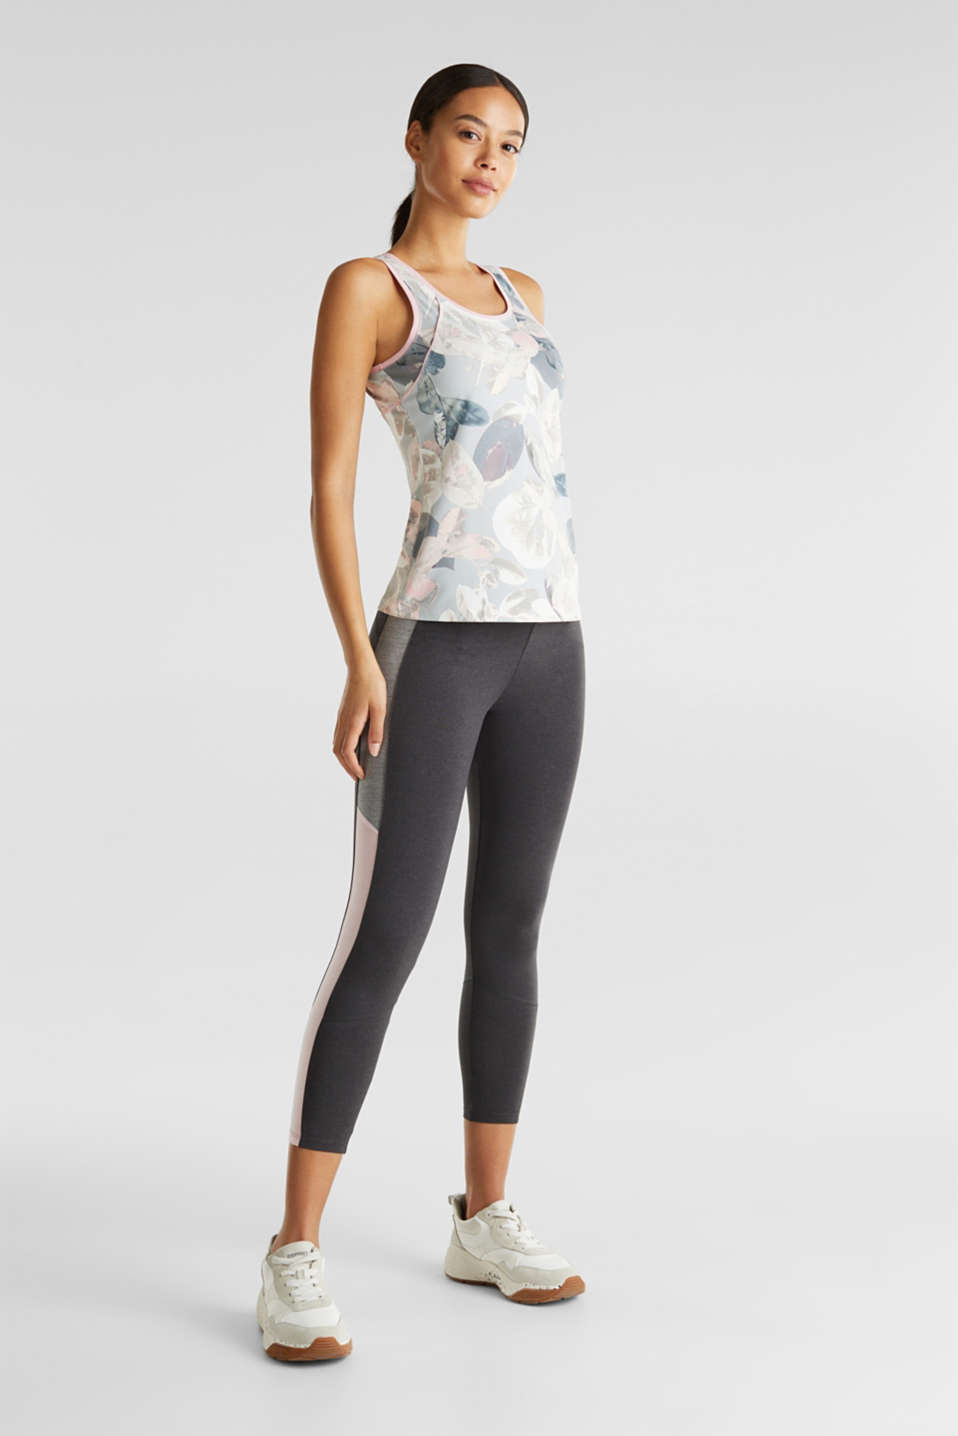 Stretch top with a print, E-DRY, LIGHT PINK 3, detail image number 1